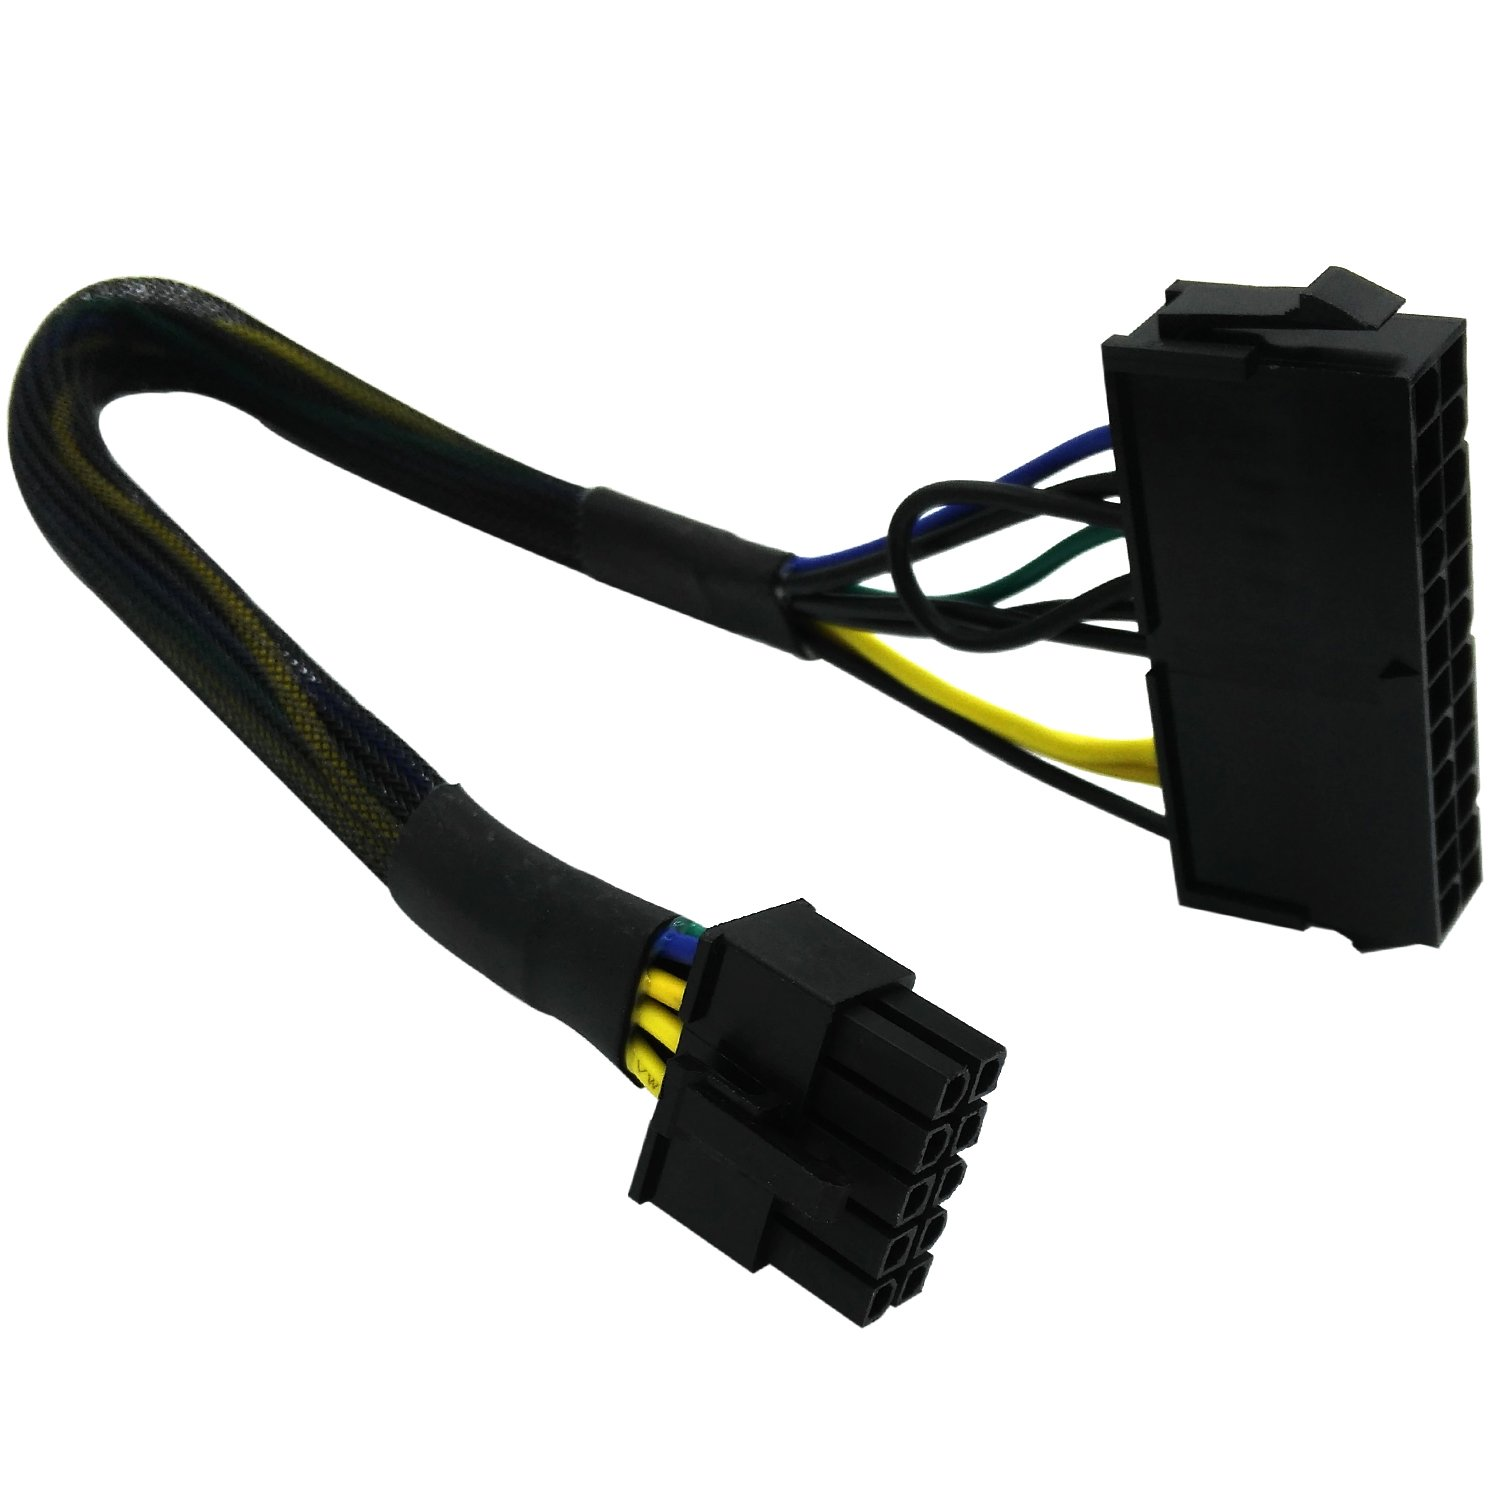 Amazon.com: COMeap 24 Pin to 10 Pin ATX PSU Main Power Adapter Braided  Sleeved Cable for IBM/Lenovo PCs and Servers 12-inch(30cm): Computers &  Accessories